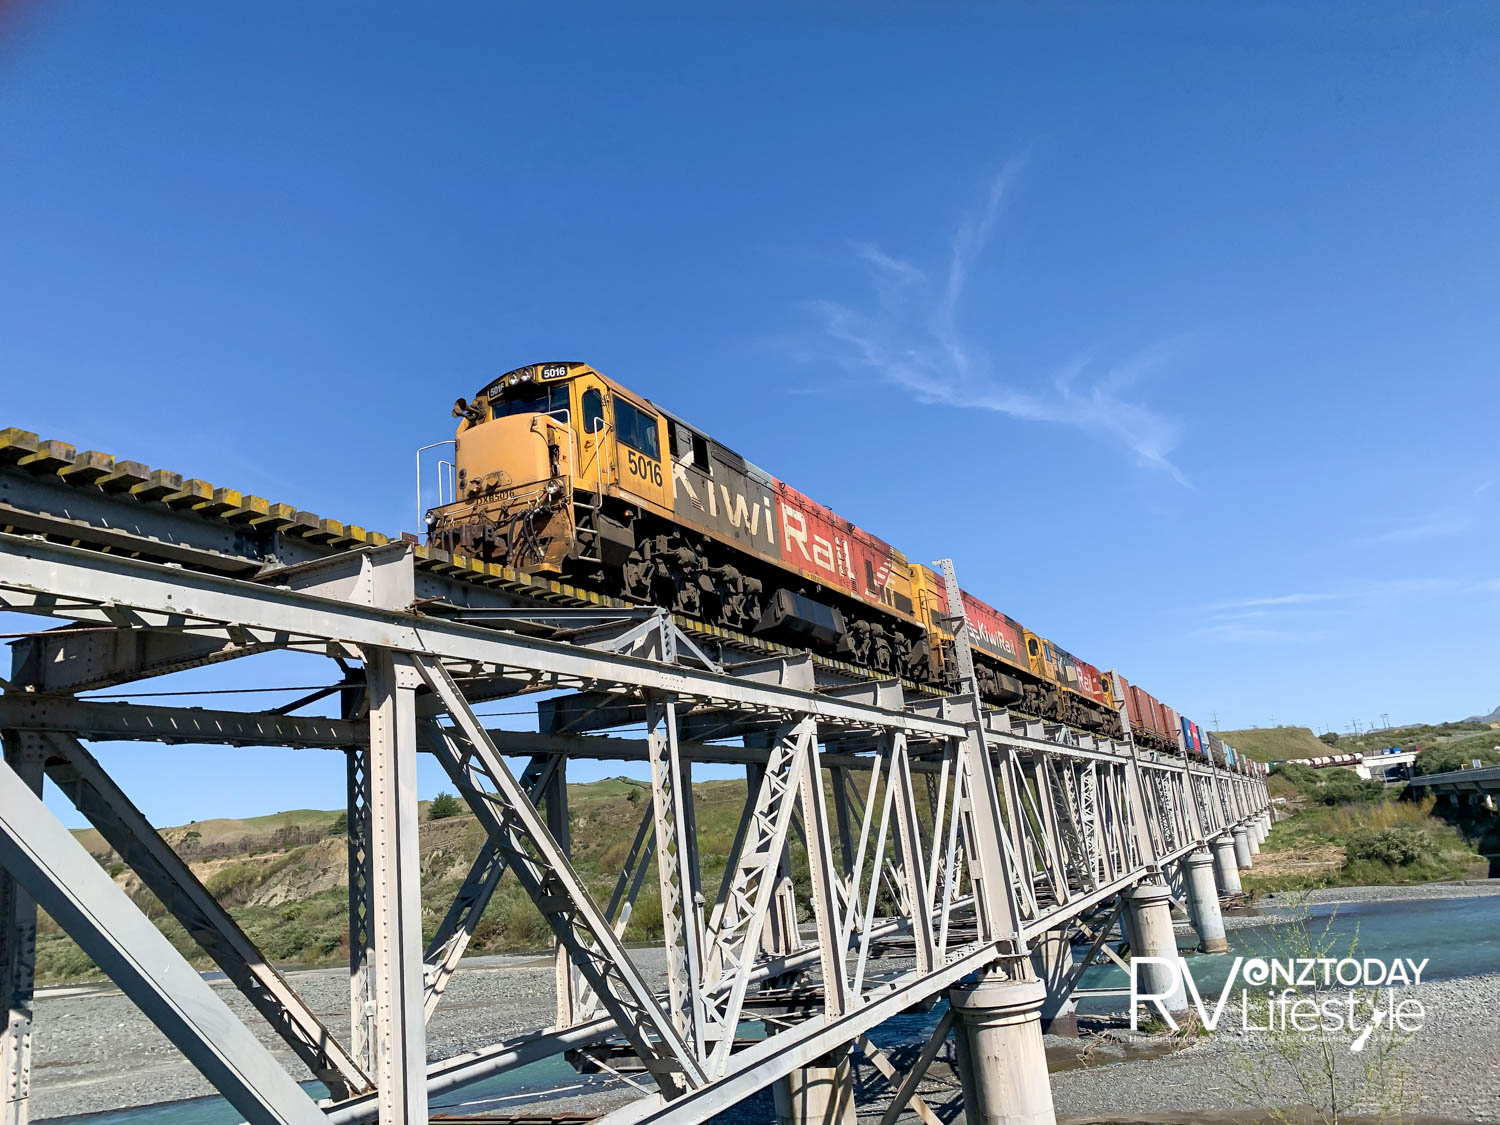 A long goods train rumbles its way across the old Seddon, double-decker bridge. The lower car deck has been removed